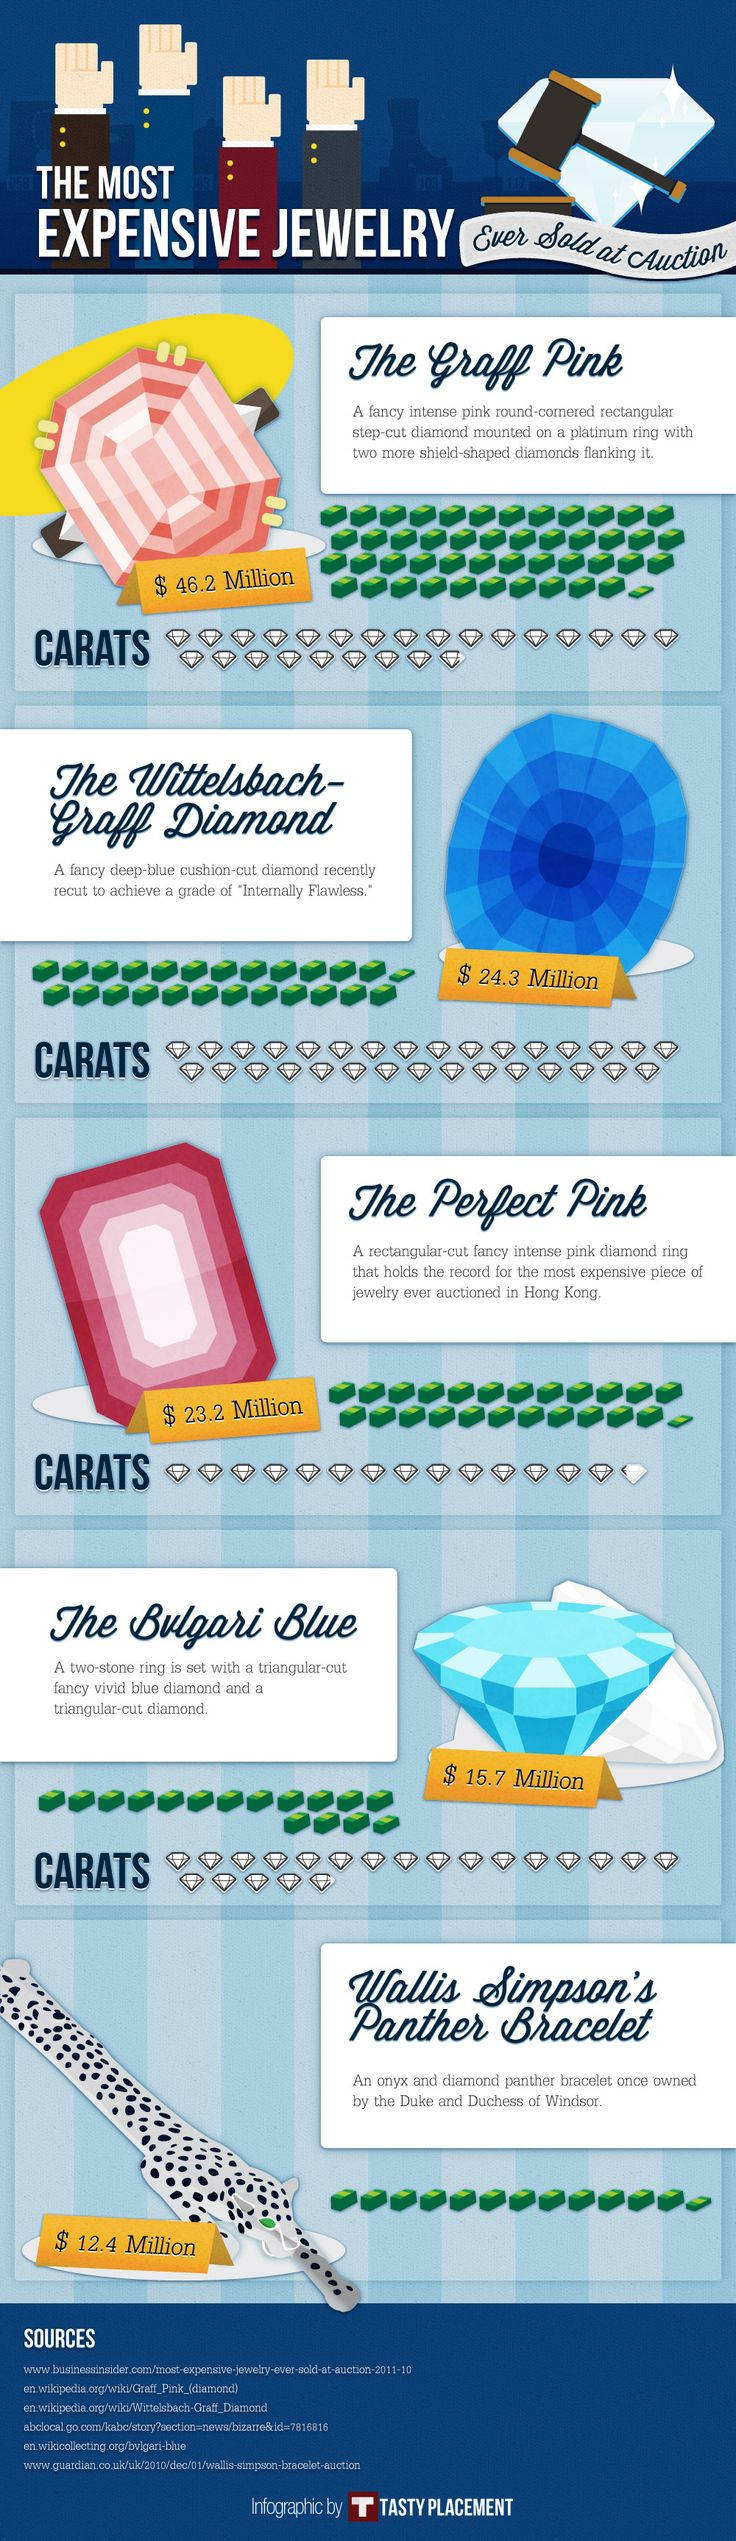 INFOGRAPHIC: The Most Expensive Jewelry Ever Sold at Auction